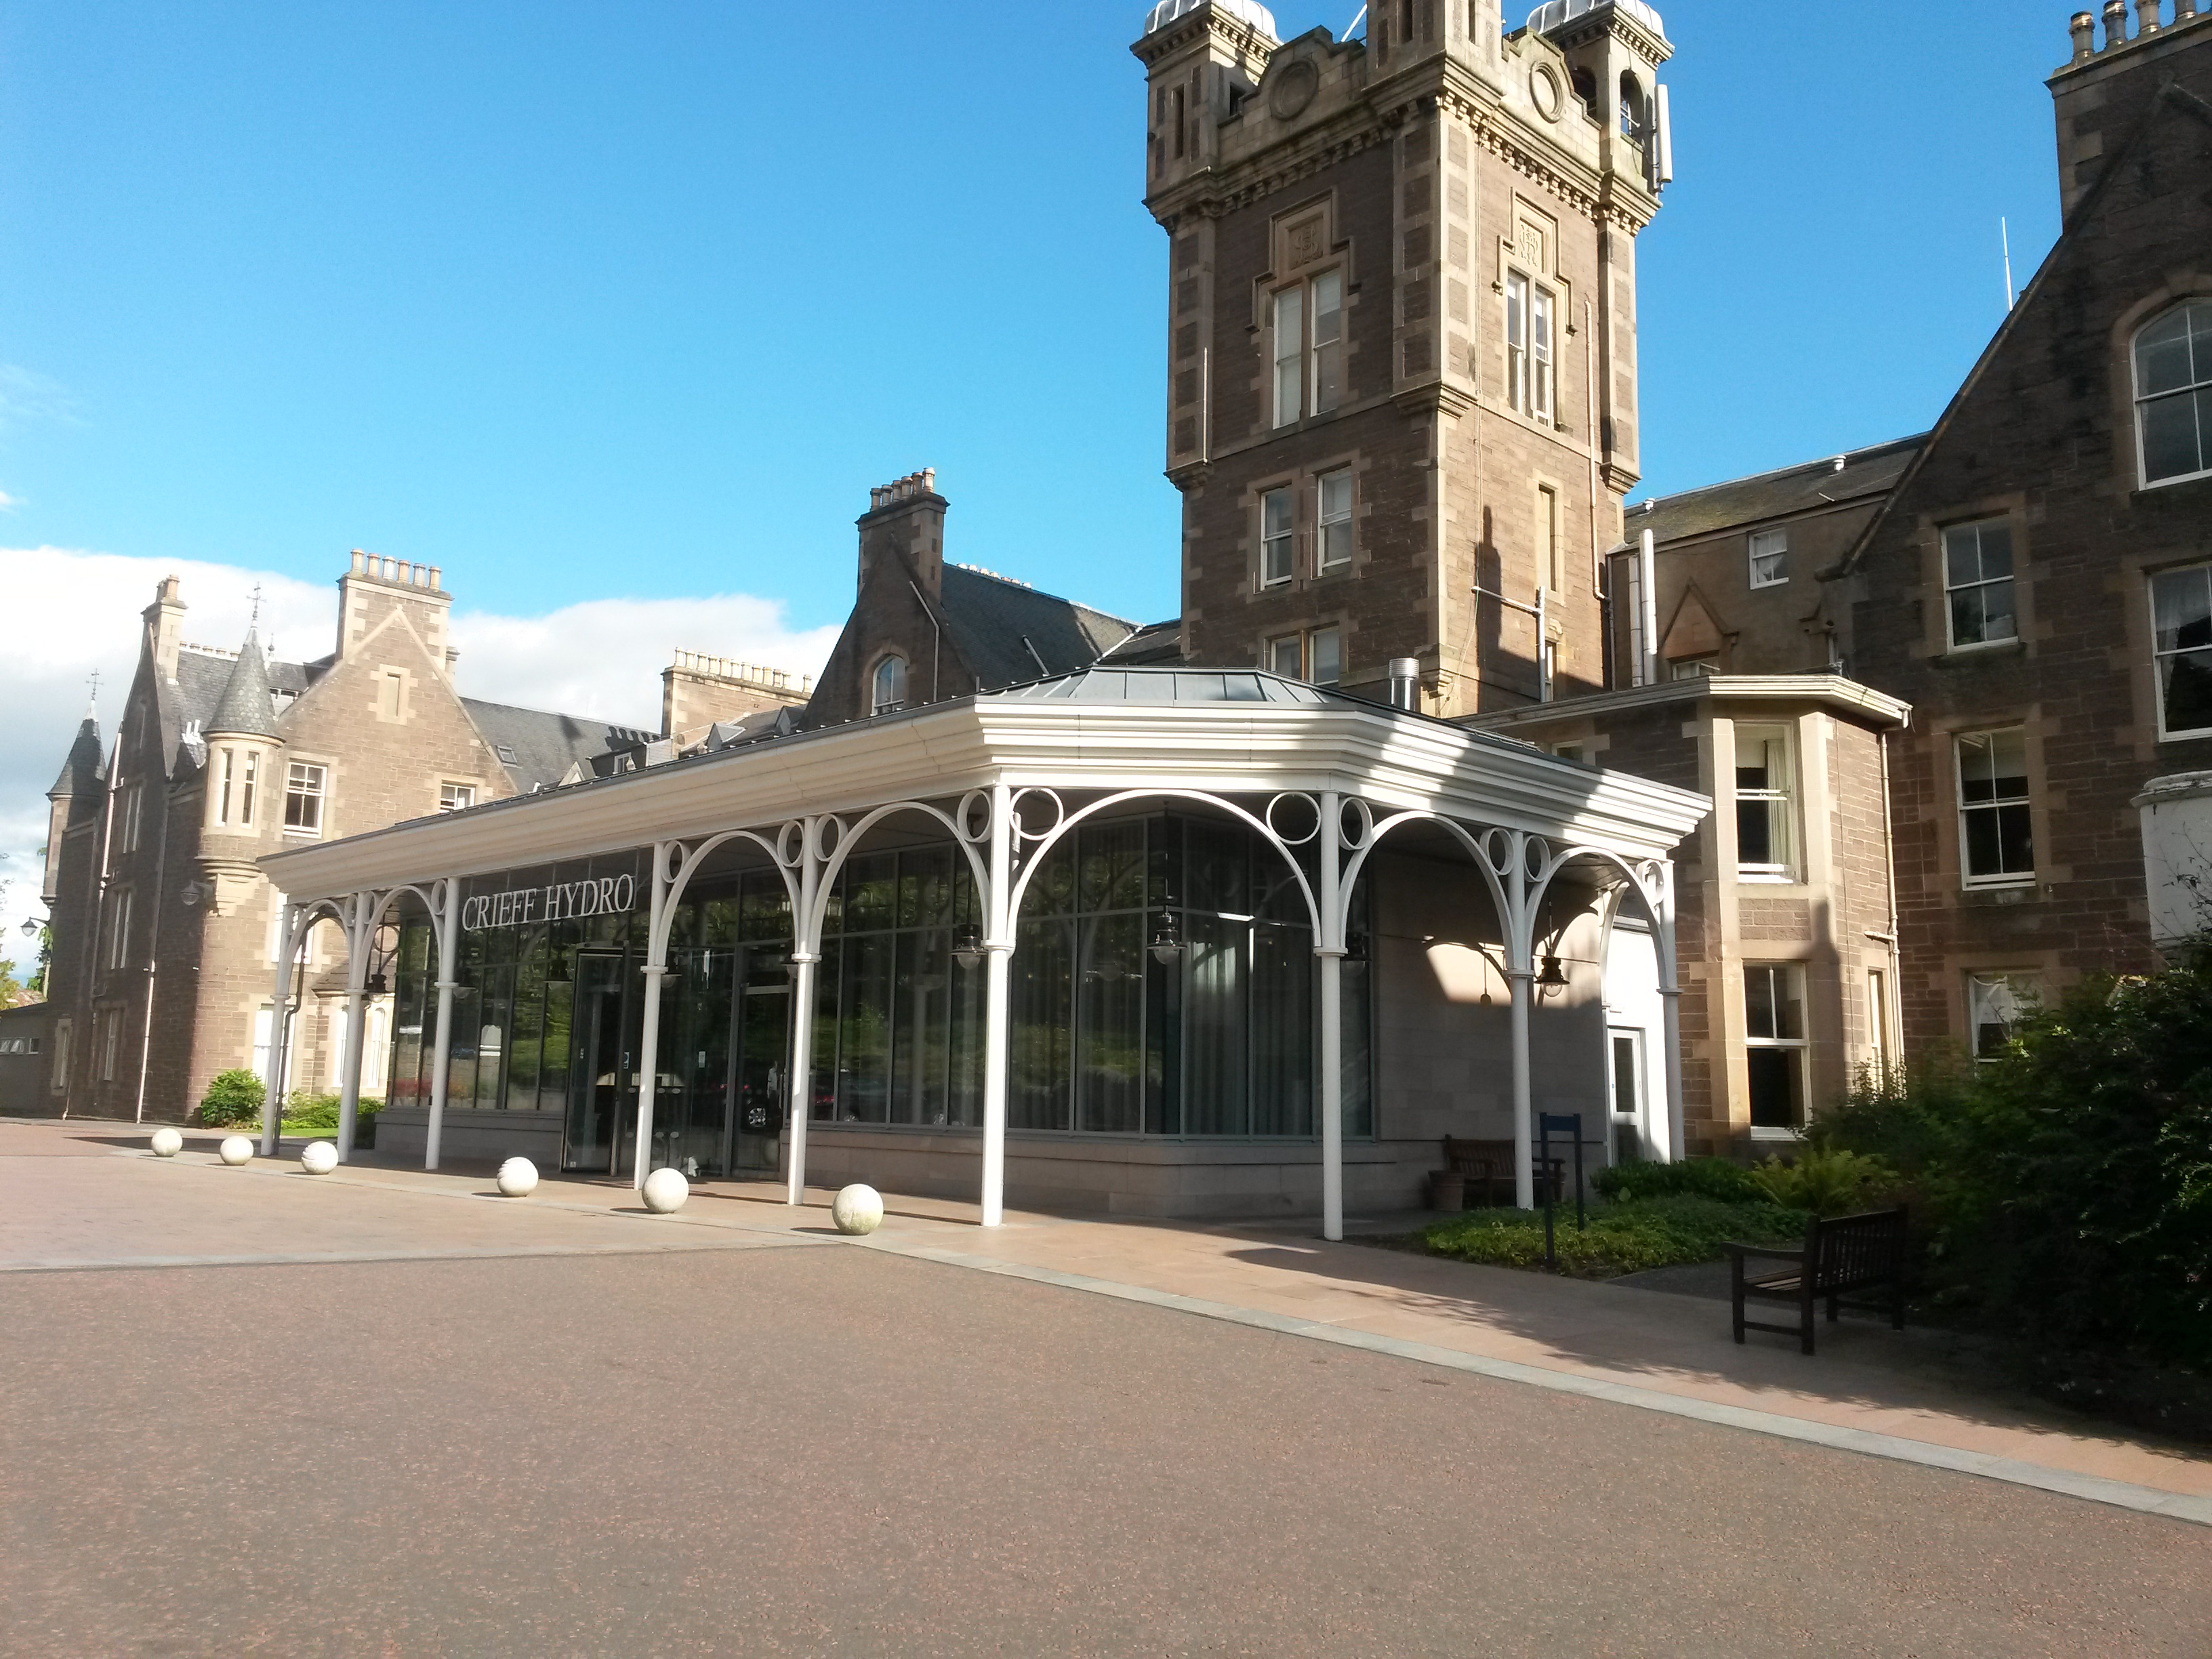 Crieff hydro fizz and pheasant - Hotels in perthshire with swimming pool ...